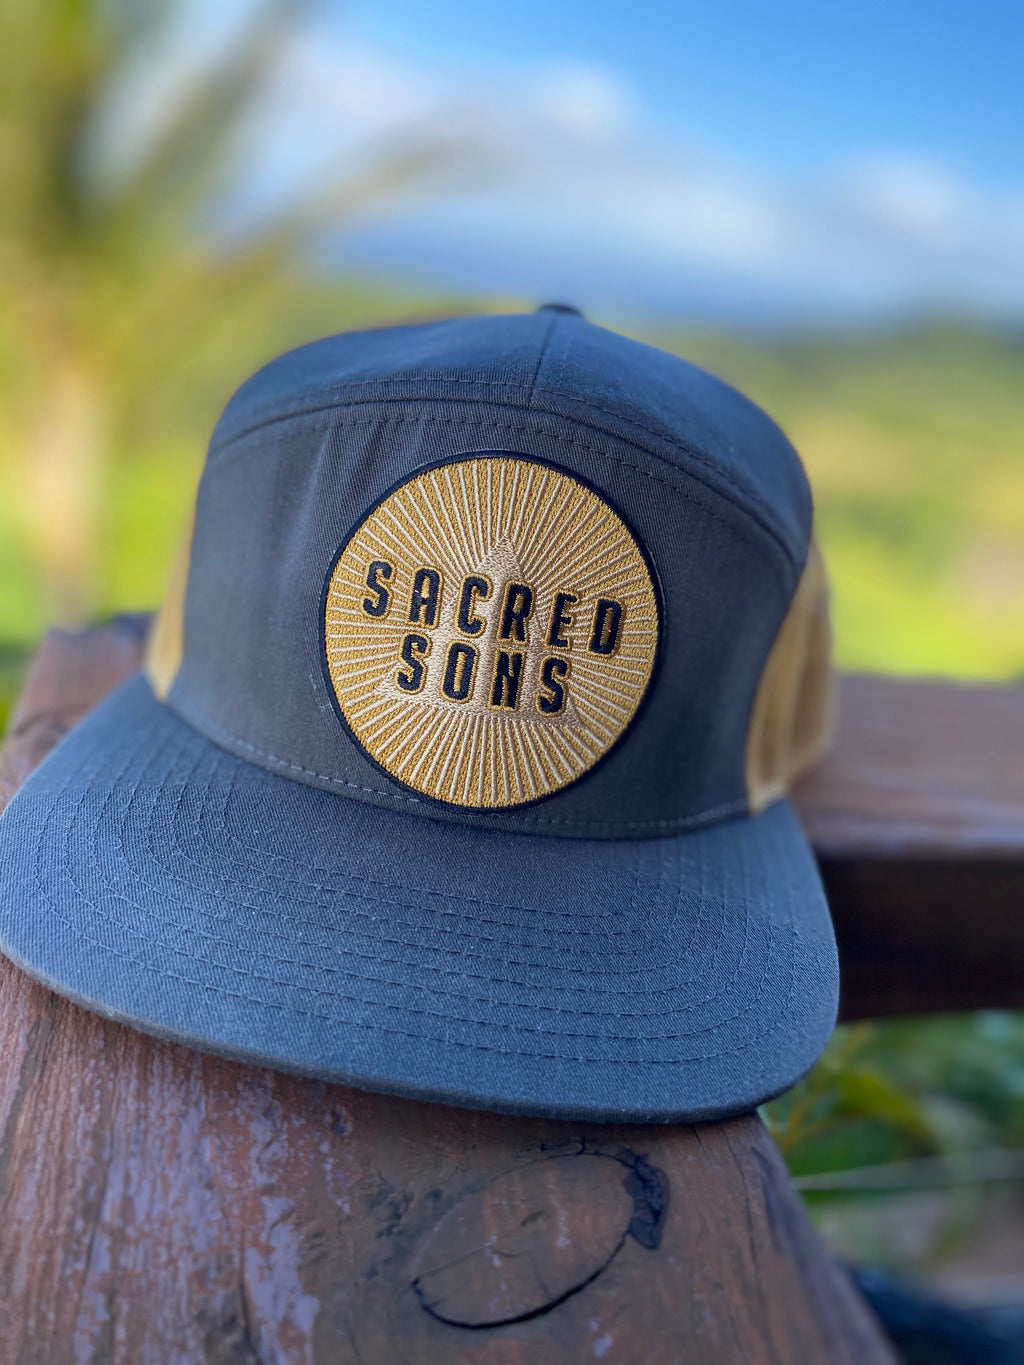 SACRED SONS - Embroidered Patch